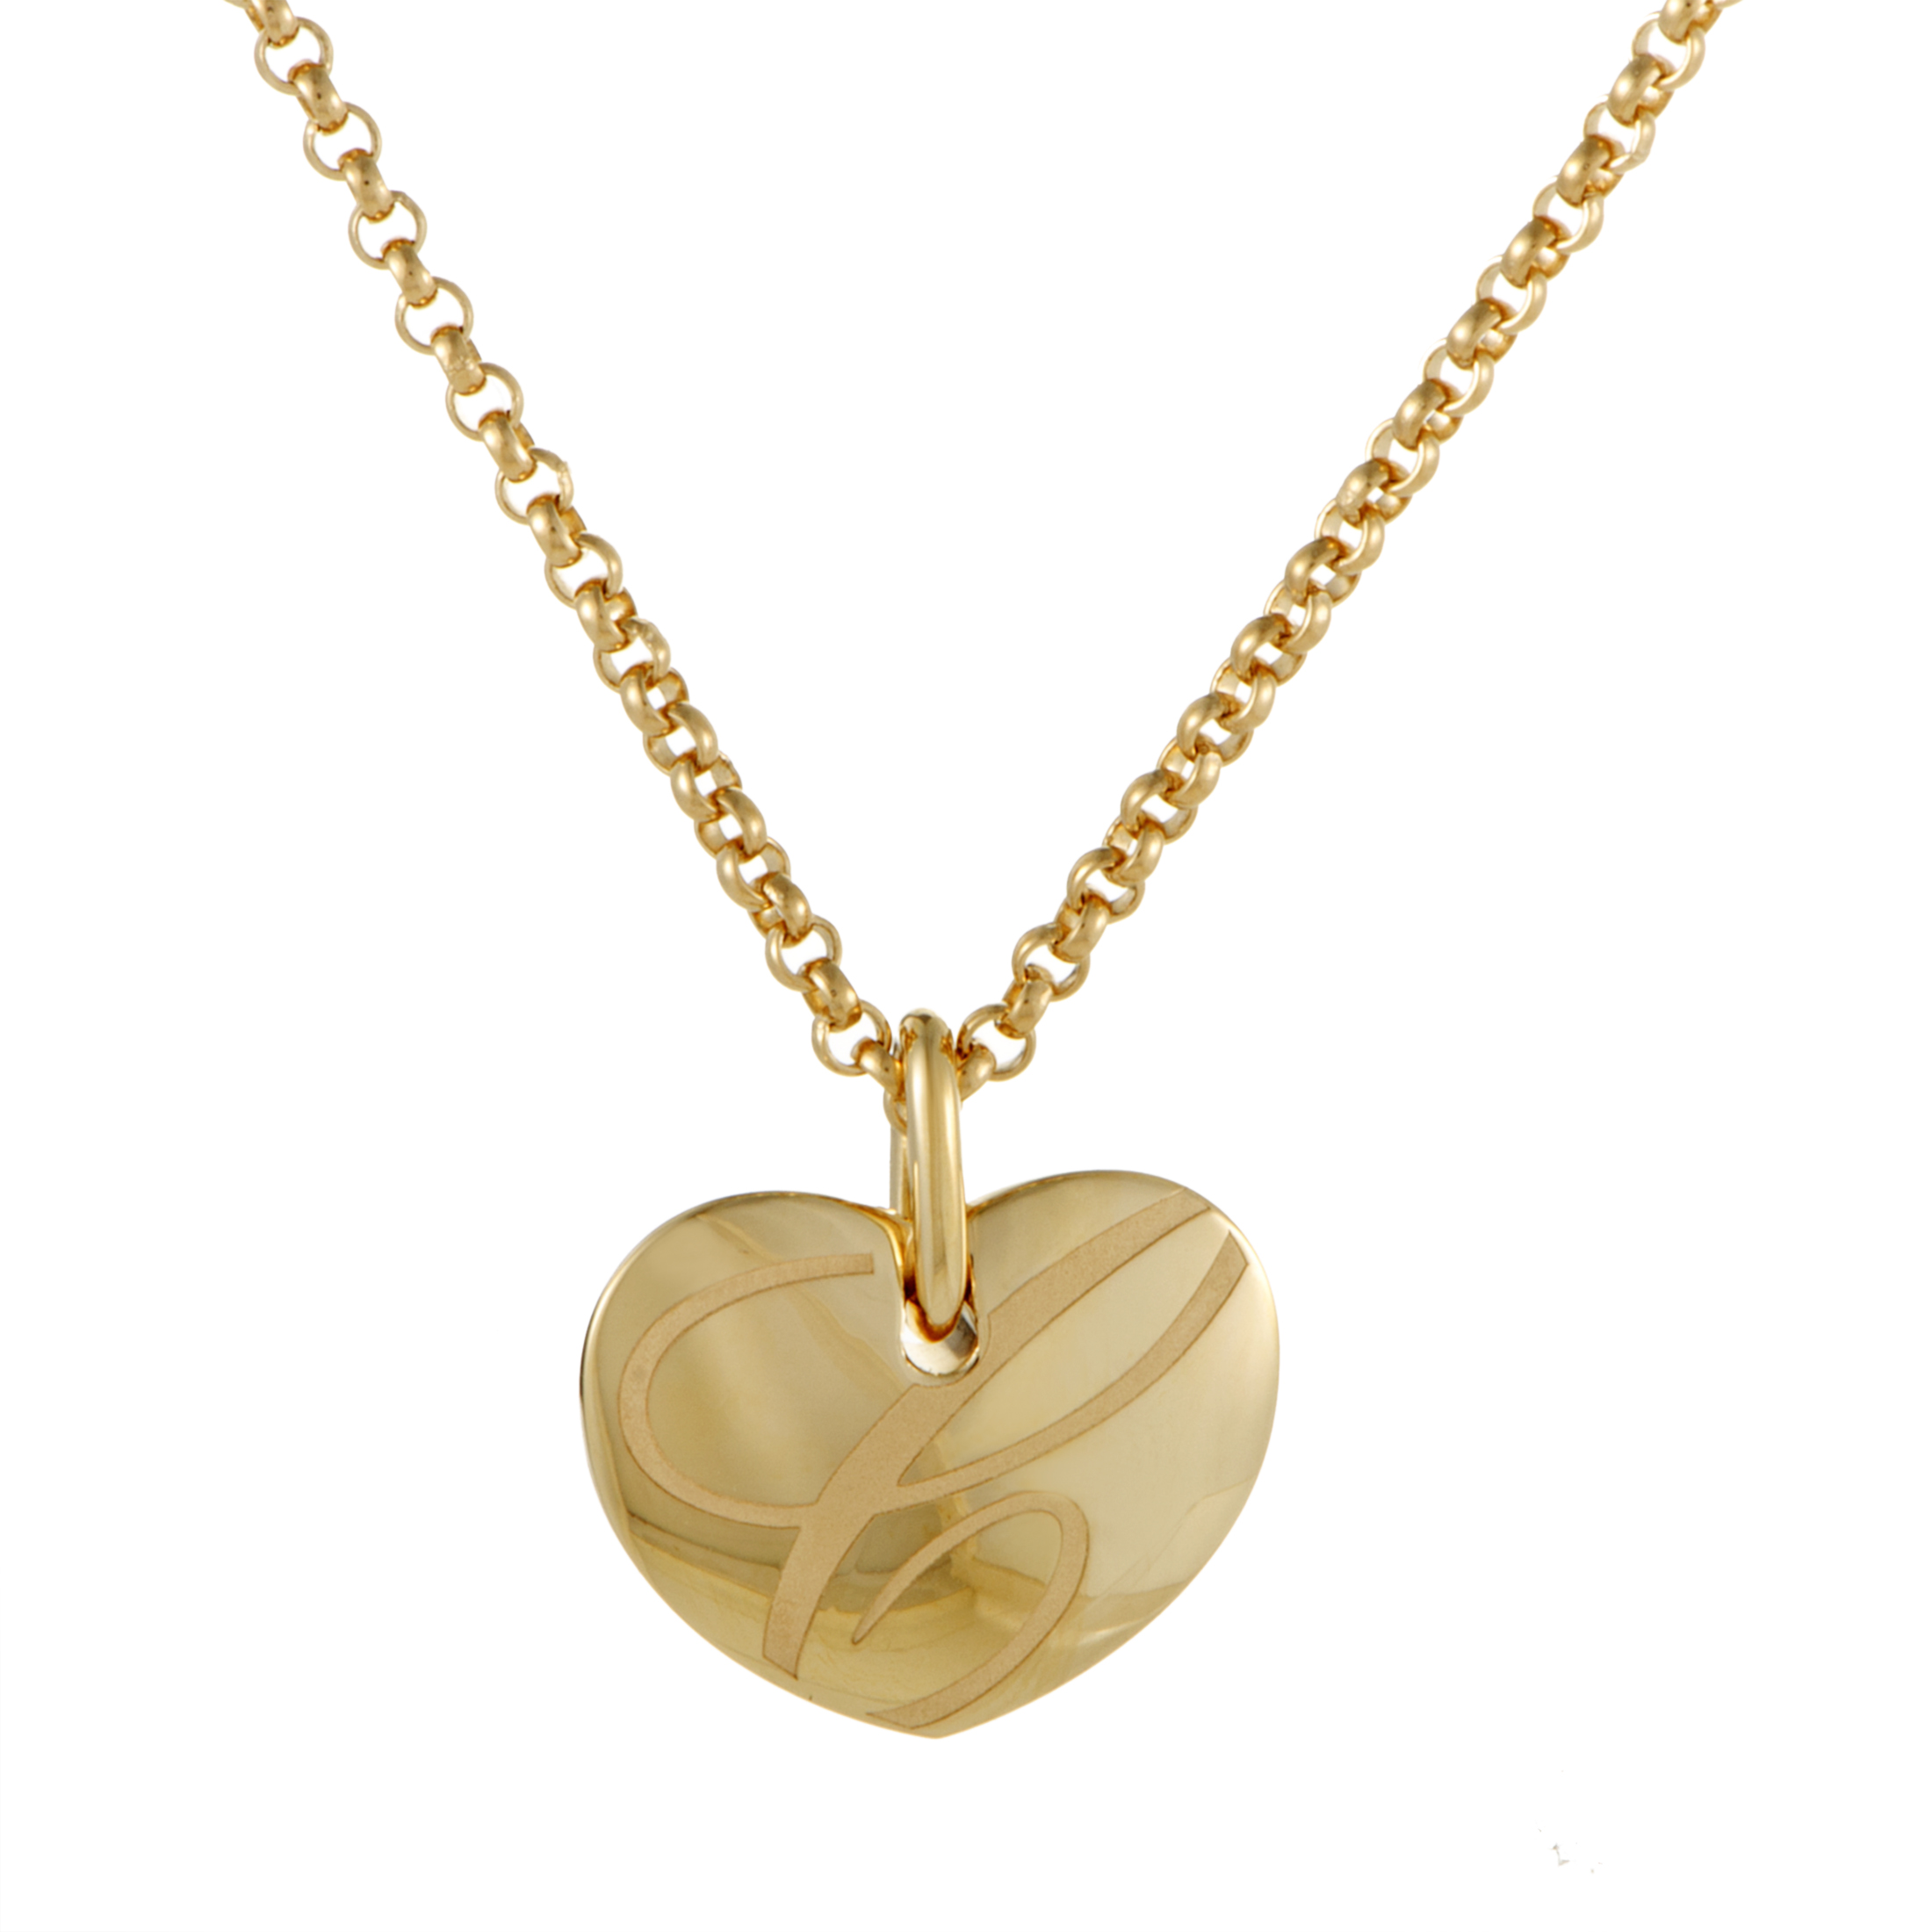 Chopard Chopardissimo Womens 18k Yellow Gold Heart Pendant. Active Bands. Blue Stone Necklace. 18k Gold Bands. Grey Diamond Rings. Black Opal Rings. Artisan Bracelet. Blue Lace Agate Pendant. Pink Opal Engagement Rings